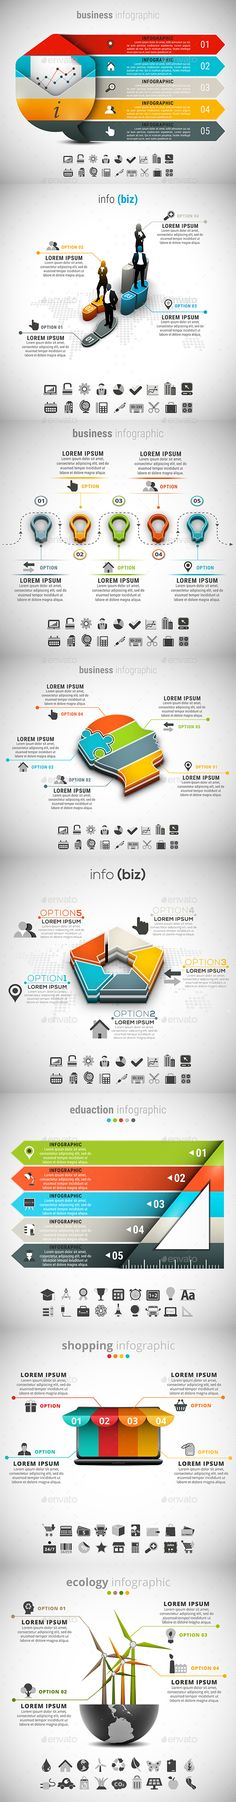 8 in 1 Infographic Templates Bundle - PSD, Vector EPS, AI Illustrator